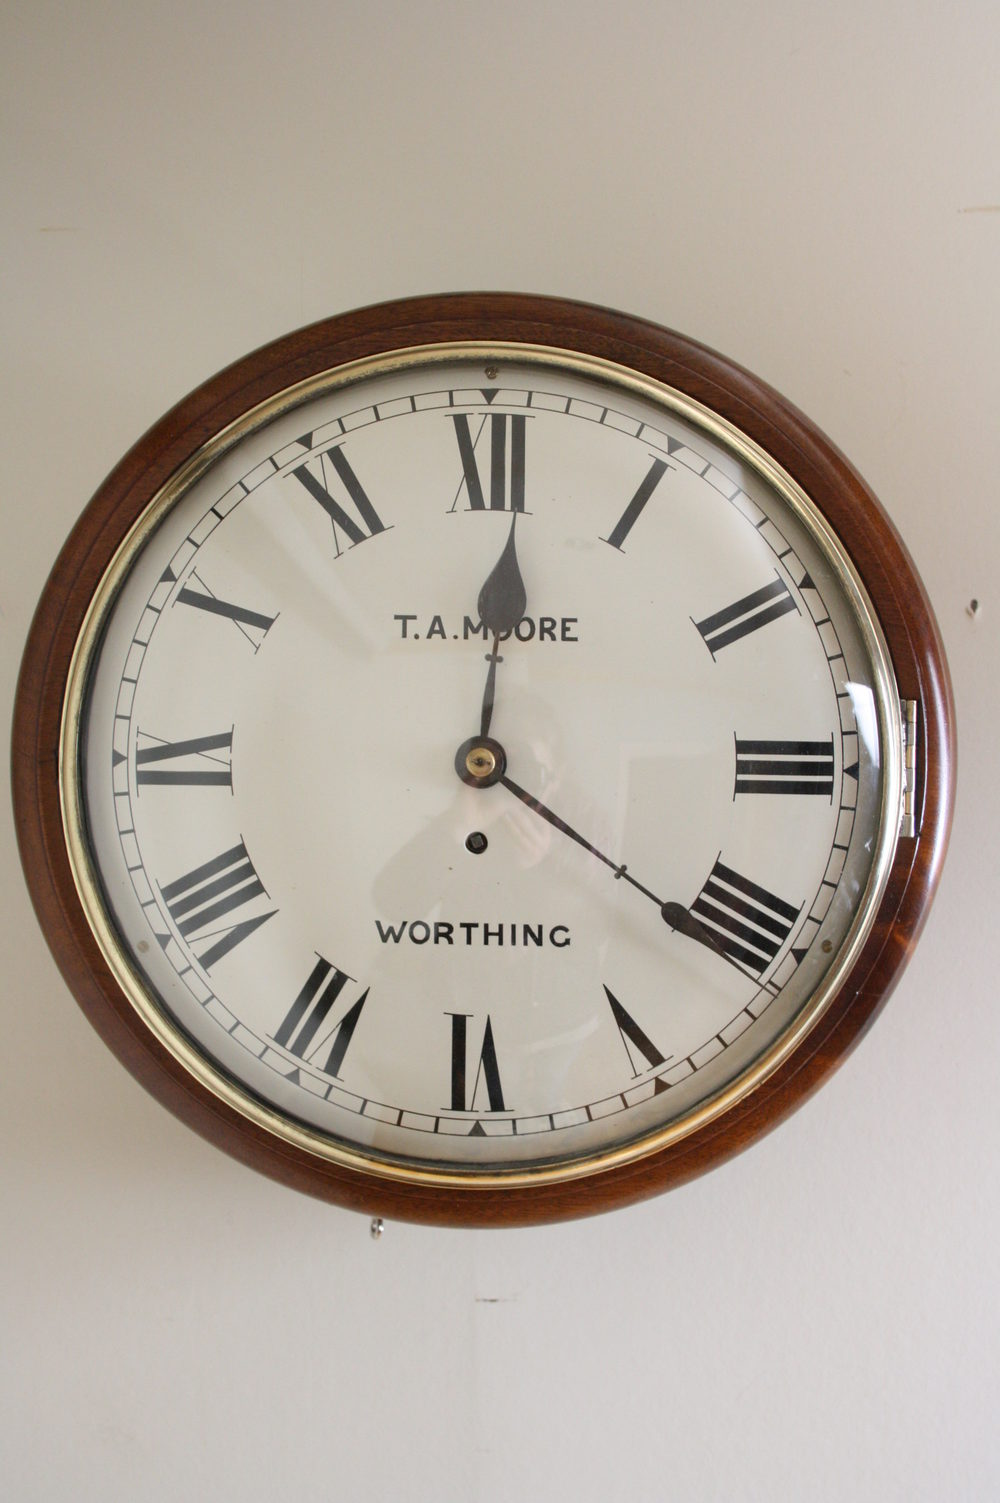 Antiques Atlas Victorian Wall Clock By T A Moore Worthing